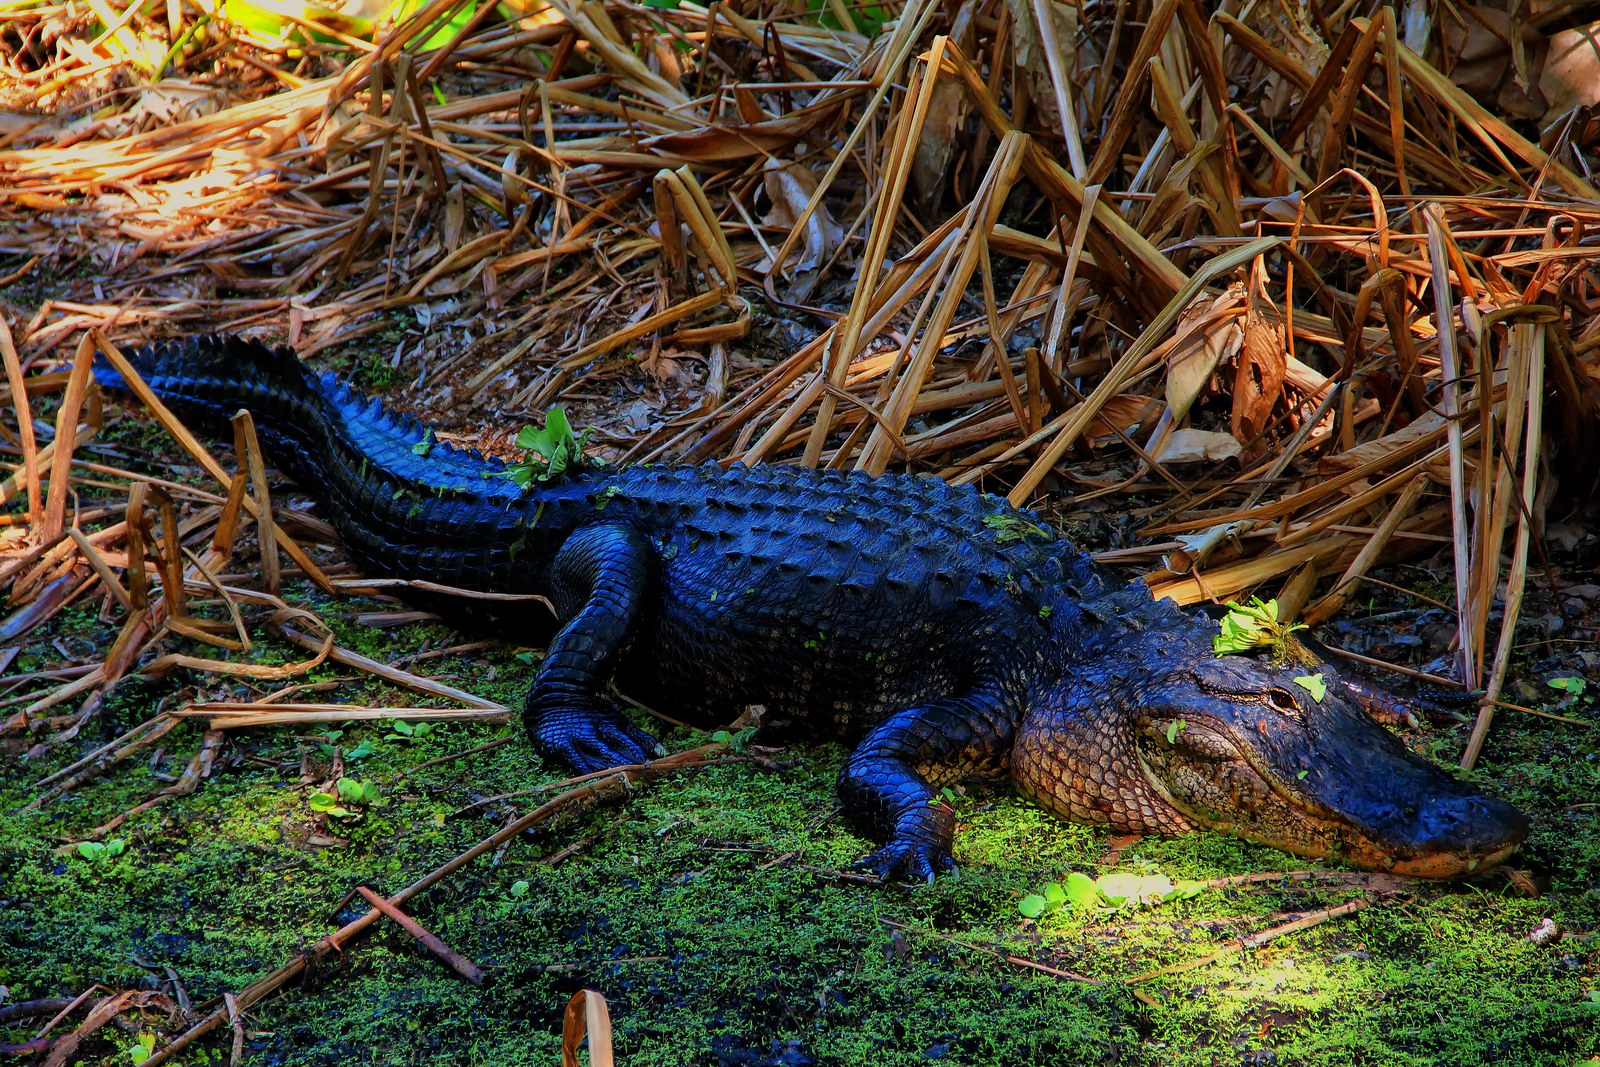 A very large alligator emerged from the water at Corkscrew Swamp Sanctuary and paused for photographs.